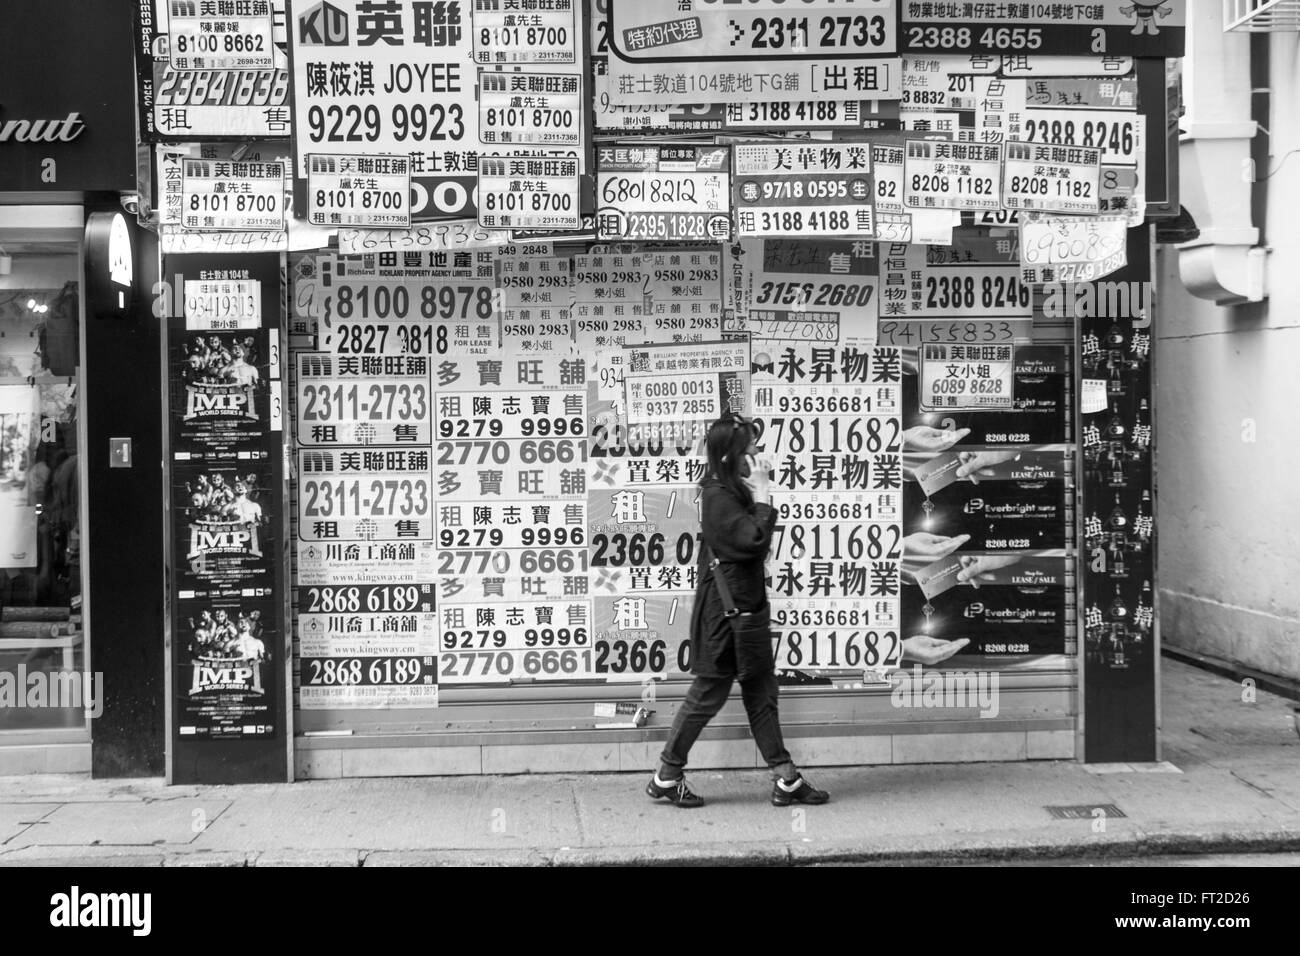 Renting Estate agent kiosk advertising telephone numbers in Hong Kong in Black and White - Stock Image